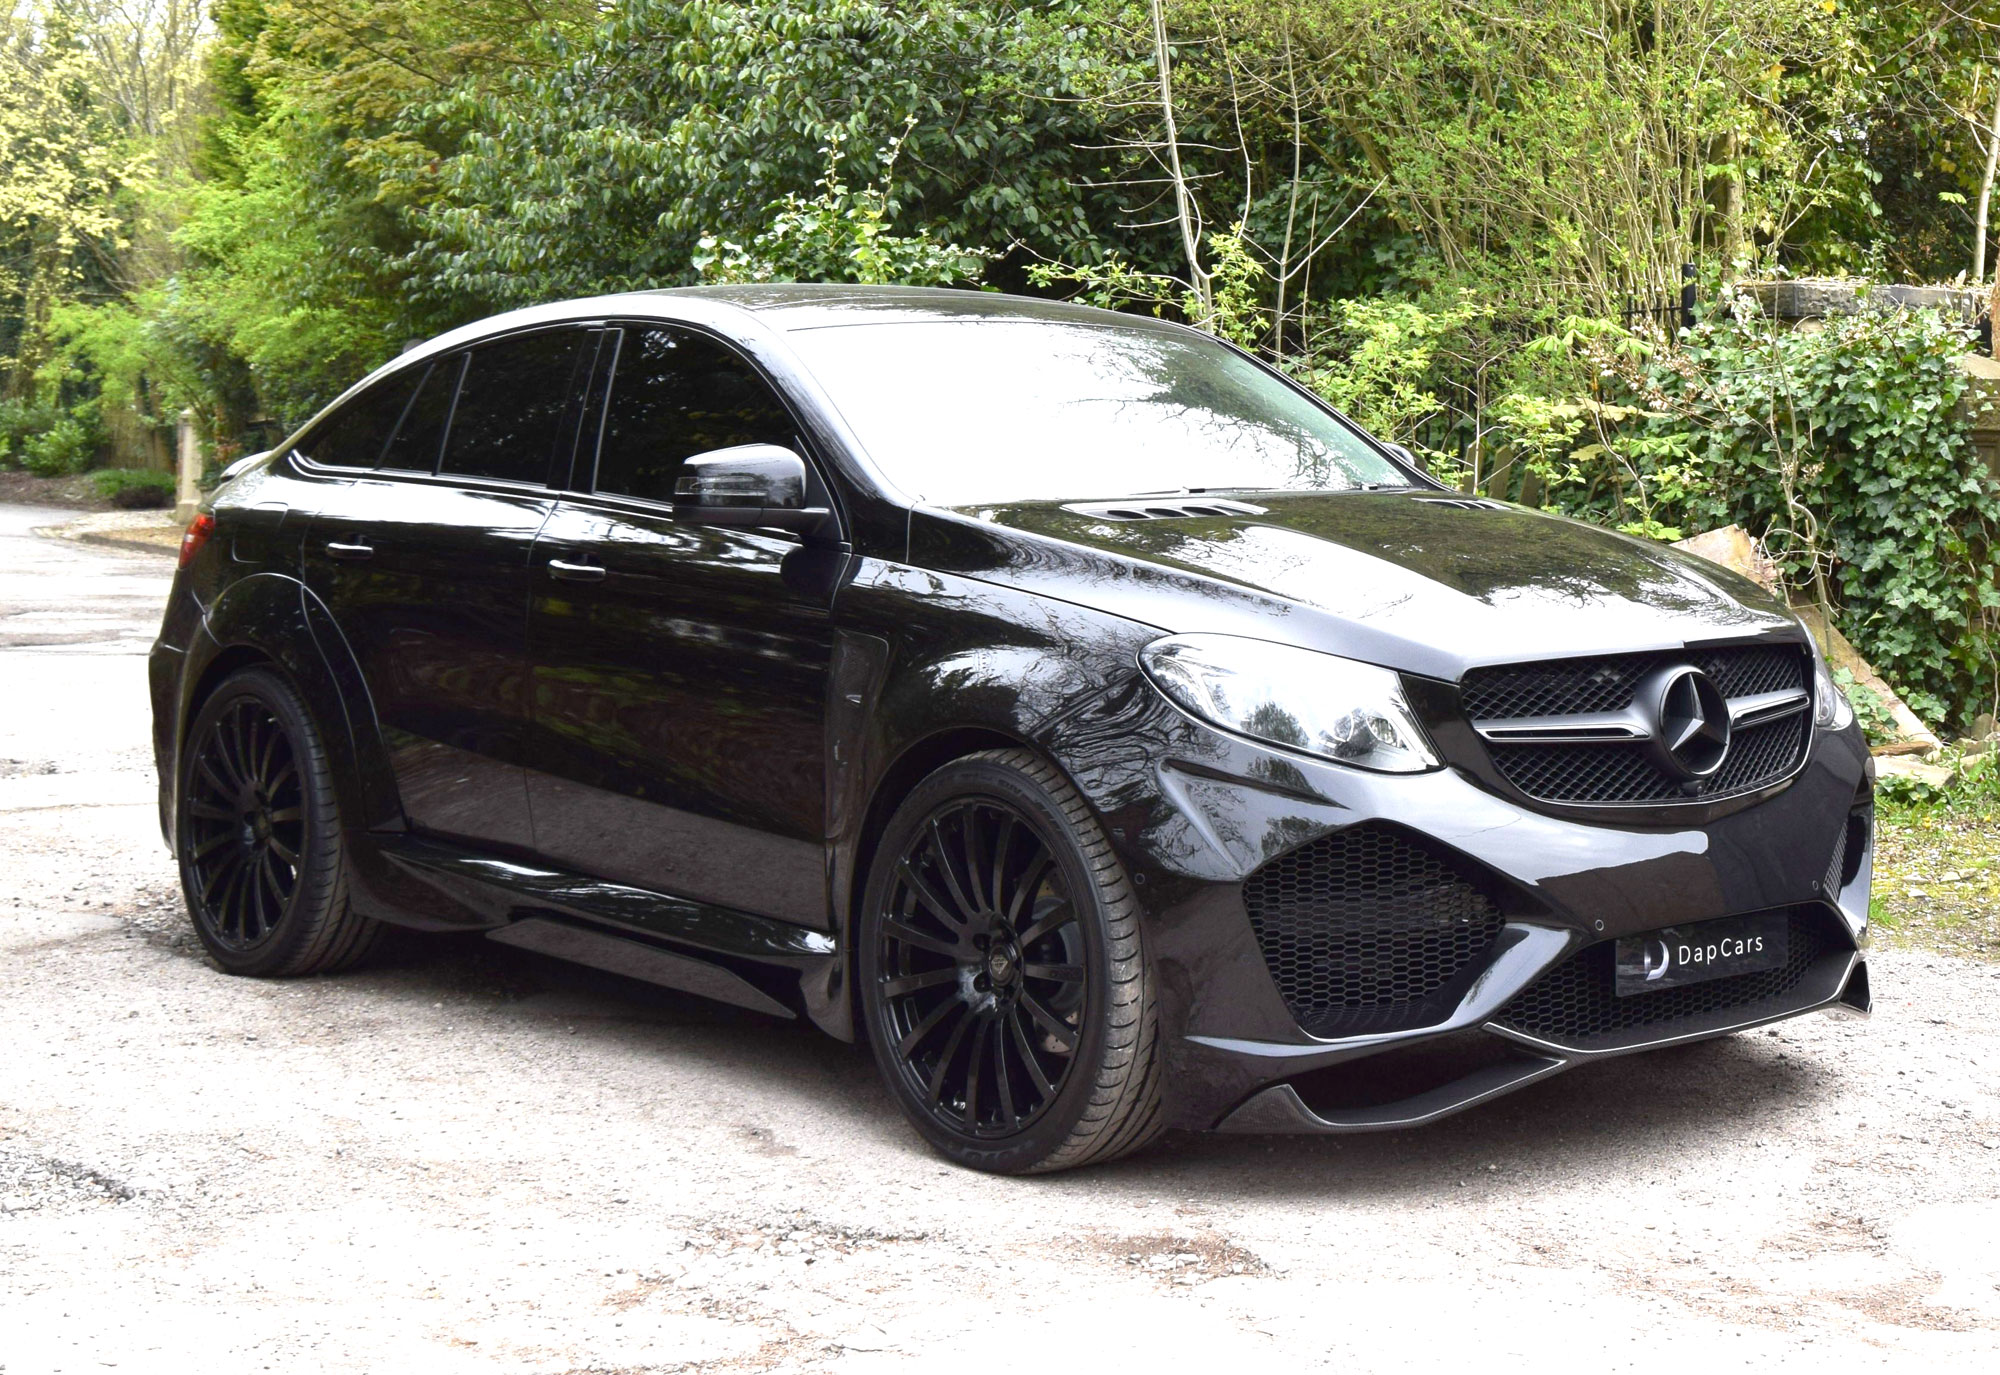 3. Mercedes-Benz Onyx G6 GLE Coupe